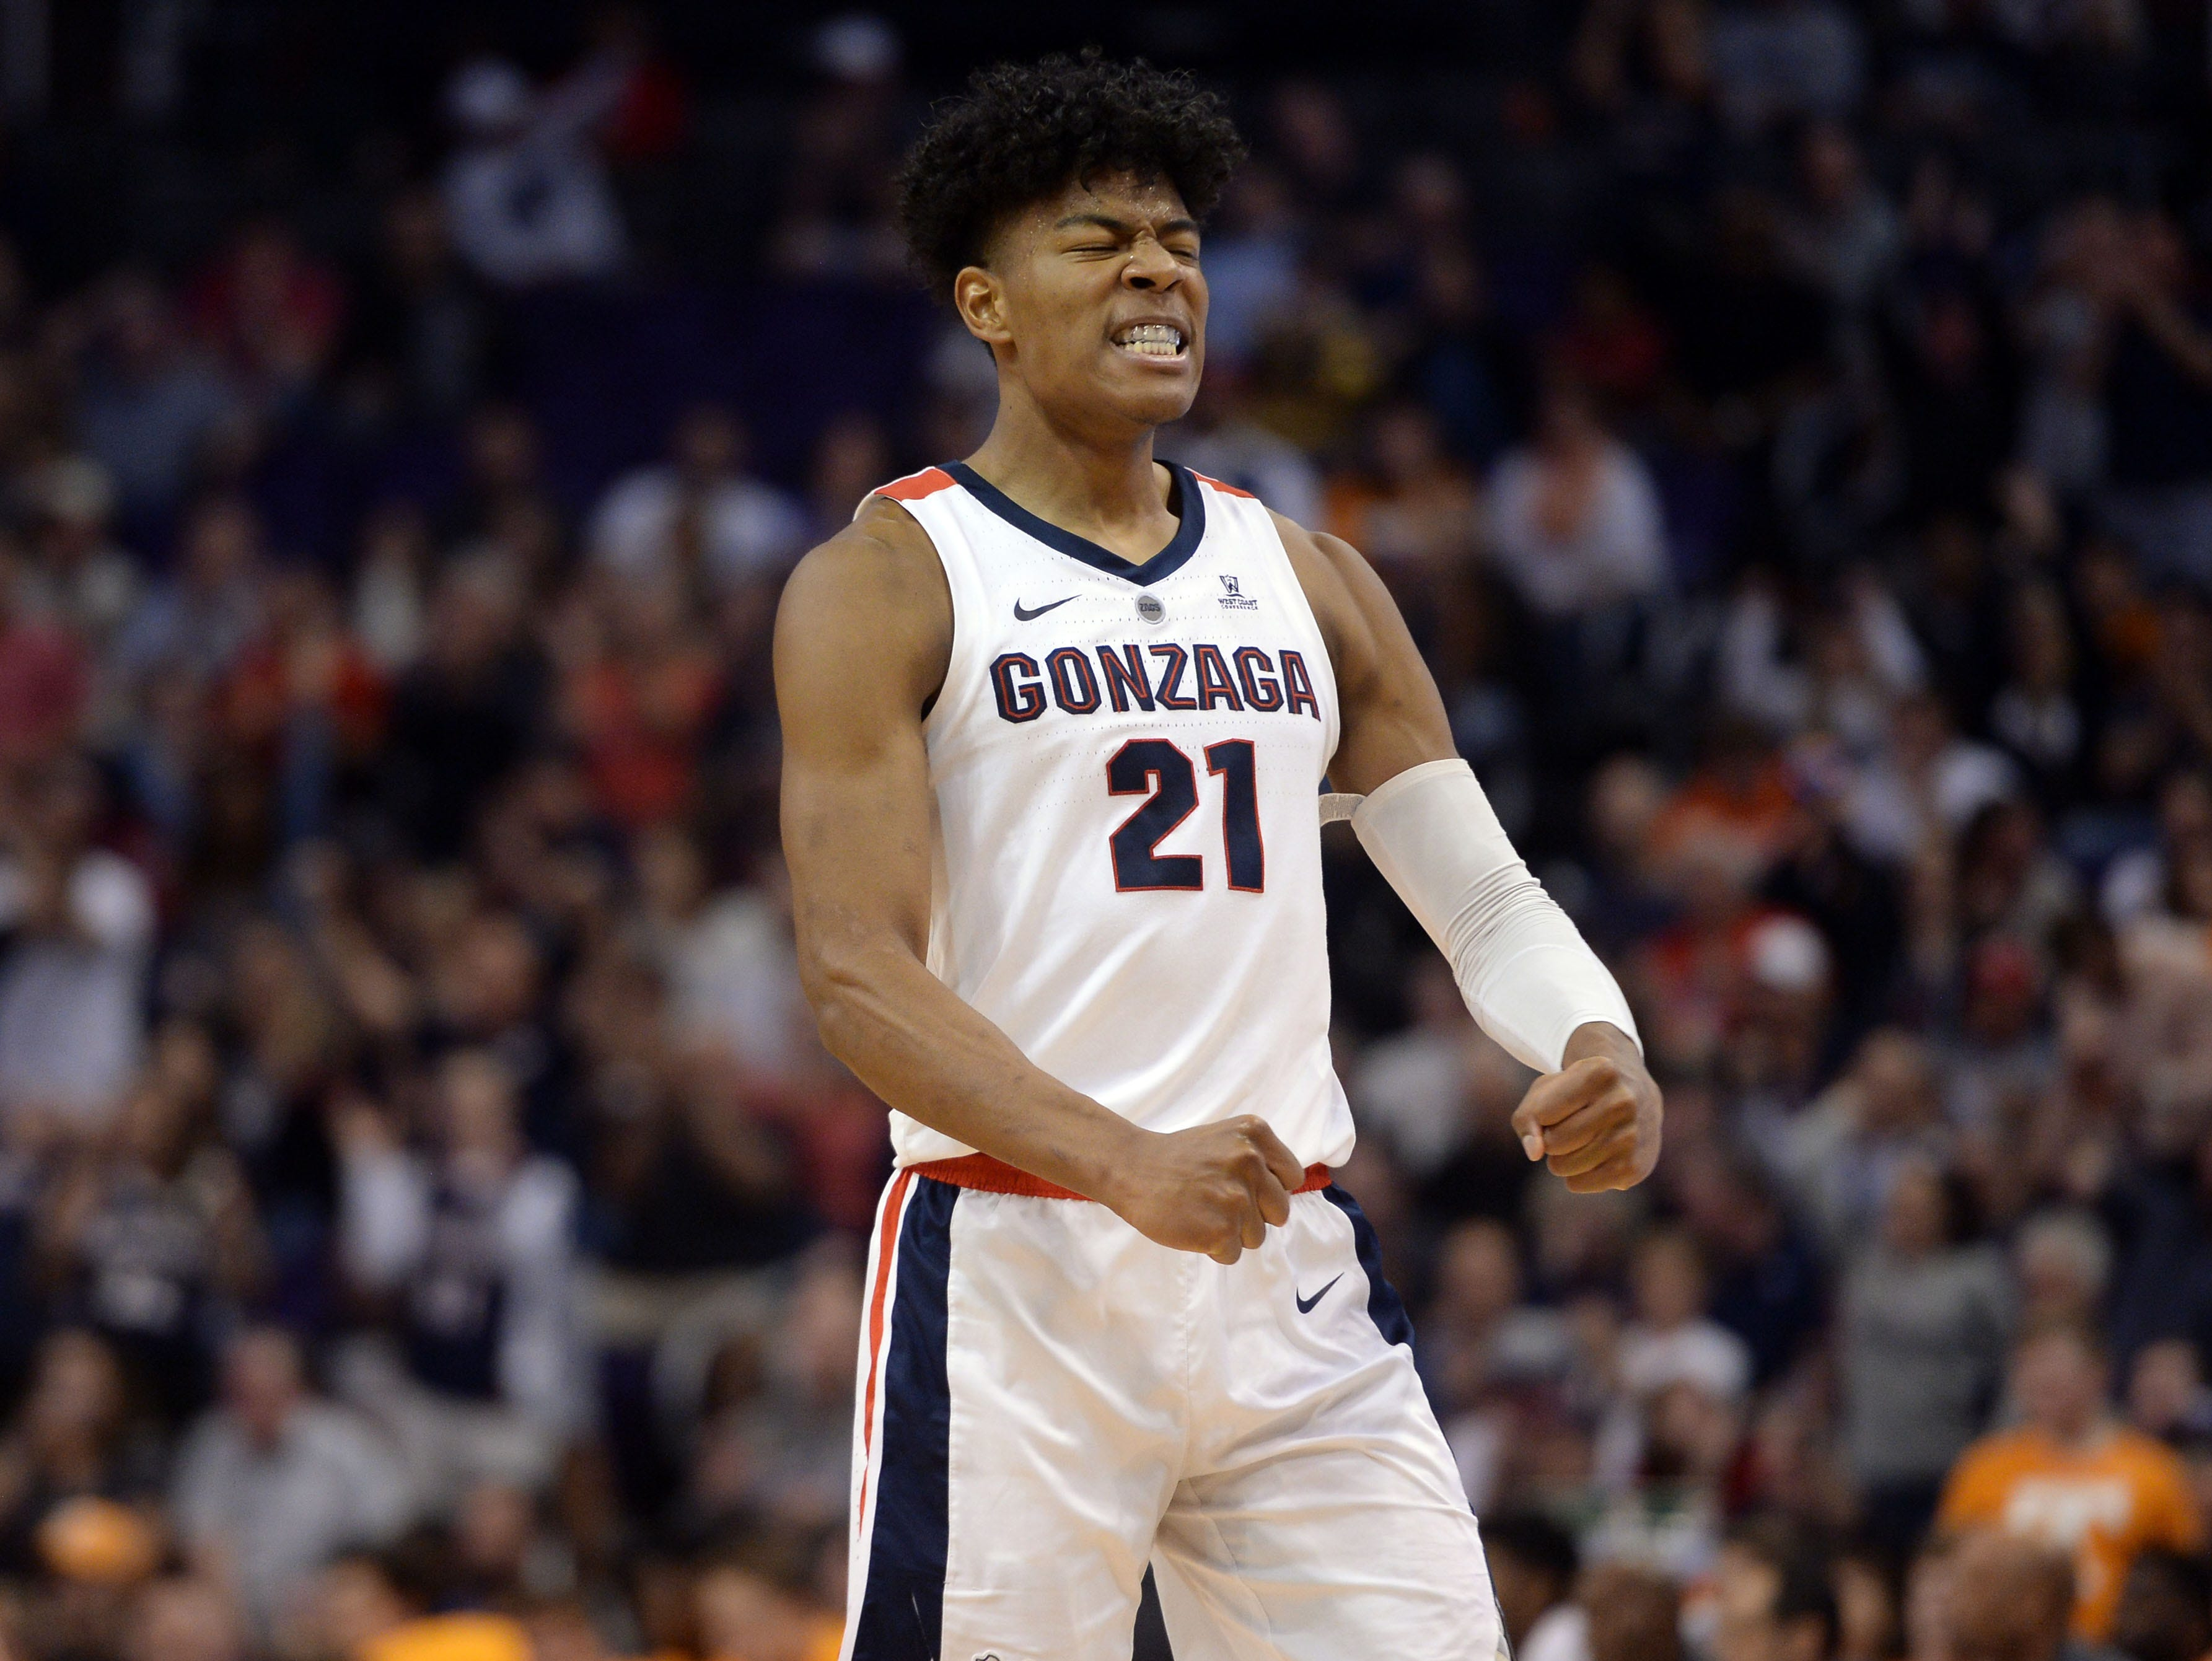 Dec 9, 2018; Phoenix, AZ, USA; Gonzaga Bulldogs forward Rui Hachimura (21) reacts against the Tennessee Volunteers during the first half at Talking Stick Resort Arena.